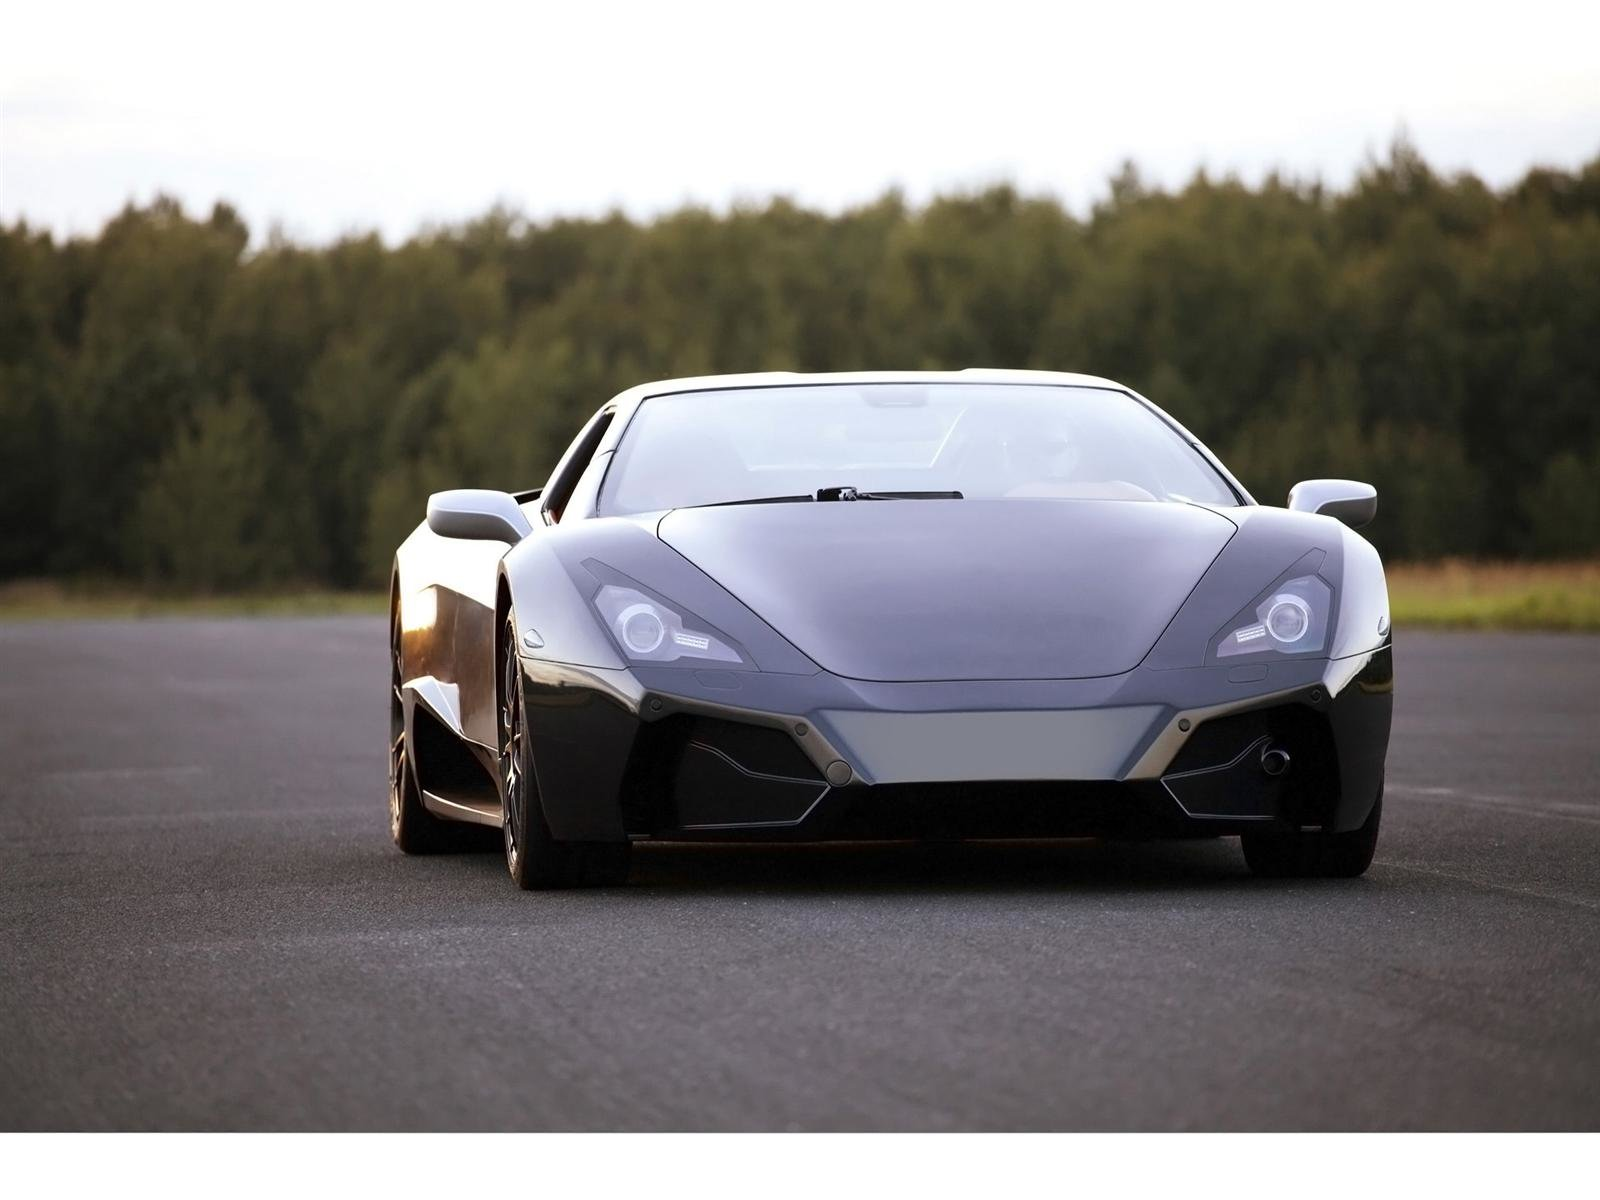 New Arrinera Supercar 2012 New Model Car Automobile For Life On This Month